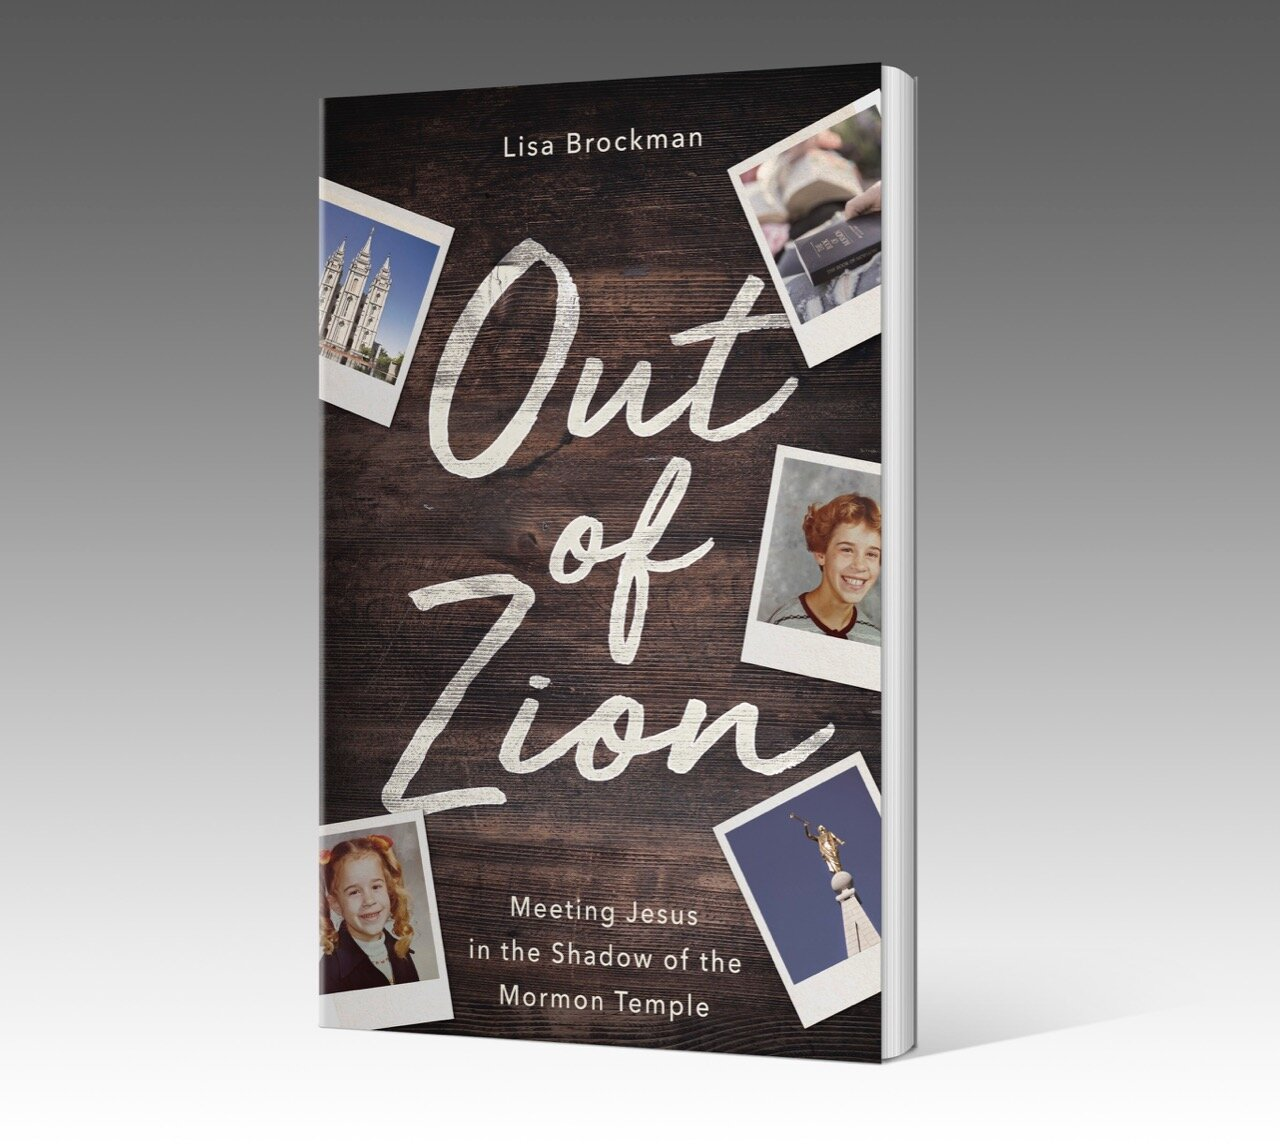 Out of Zion: Meeting Jesus in the Shadow of the Mormon Temple - This is my debut book. This book found me. It was one of those journeys characterized by circumstances far beyond my ability to orchestrate. I attempted to jump ship many times along the way, but each time, Jesus invited me to keep writing. I find following Him to be irresistible. Eventually, Out of Zion was born. Click for more of the story.